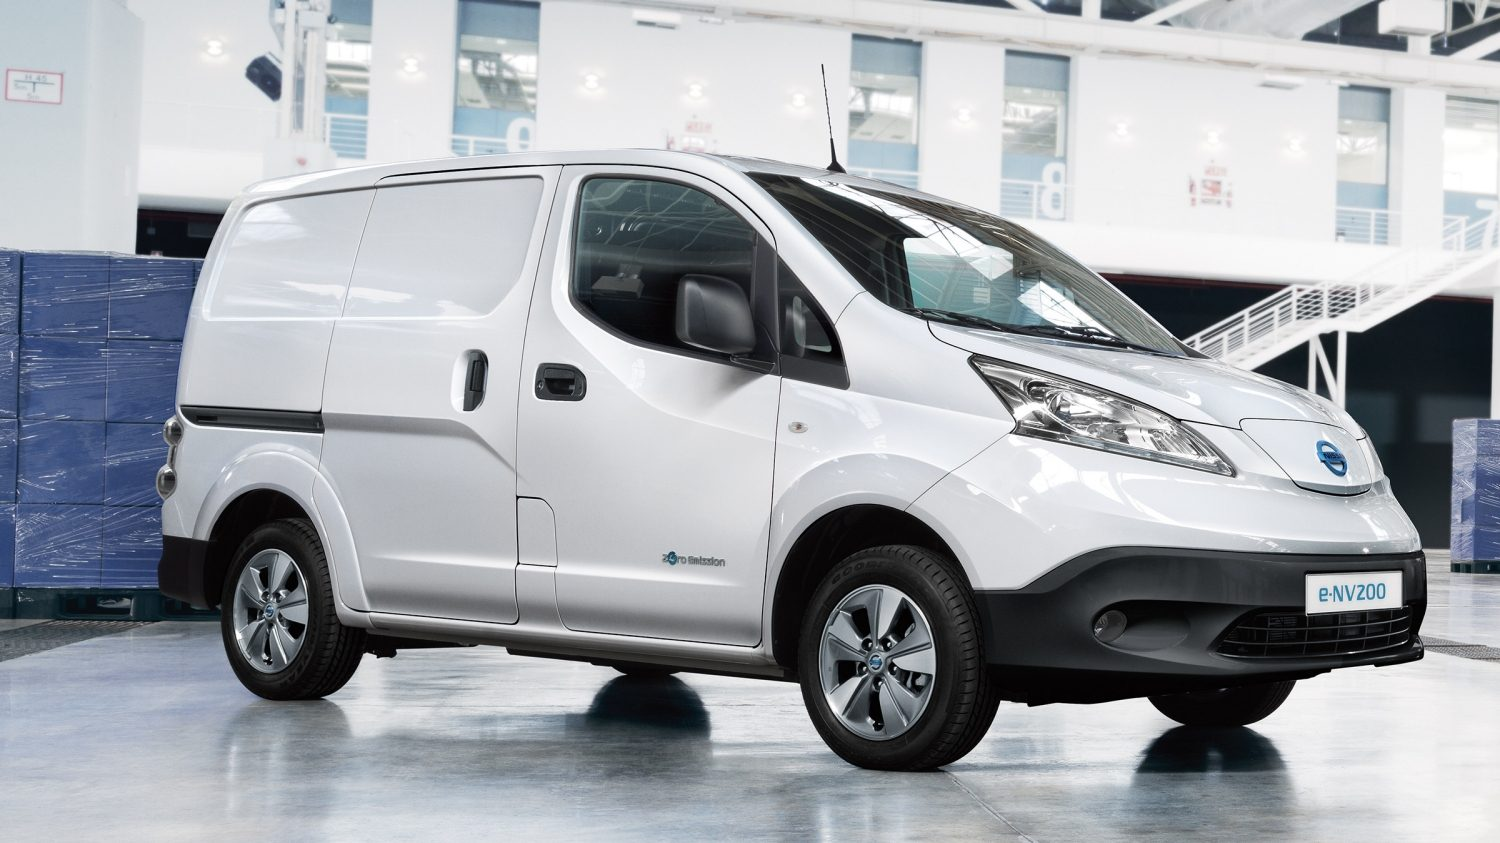 New Nissan e-NV200 parked in a warehouse